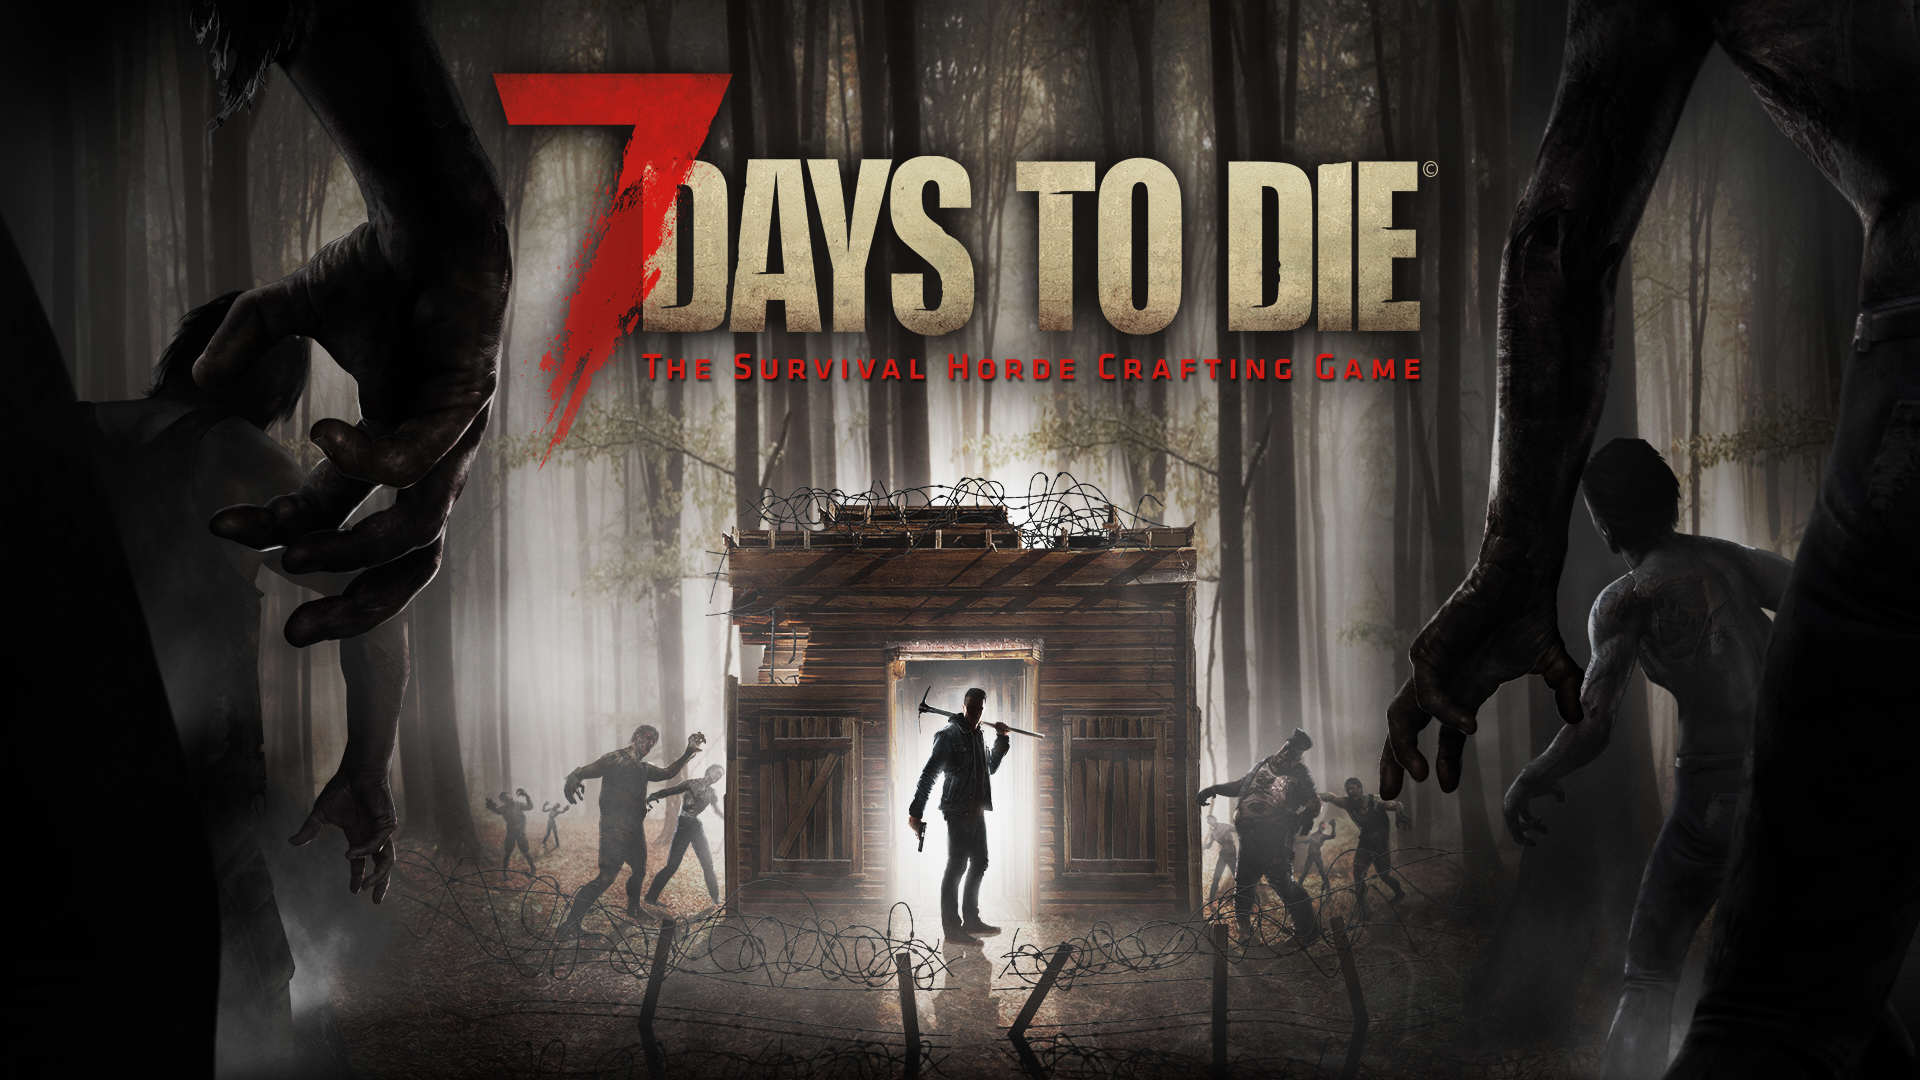 In 7 Days To Die Boredom Is The Only Thing That Kills 7D2D KeyArt